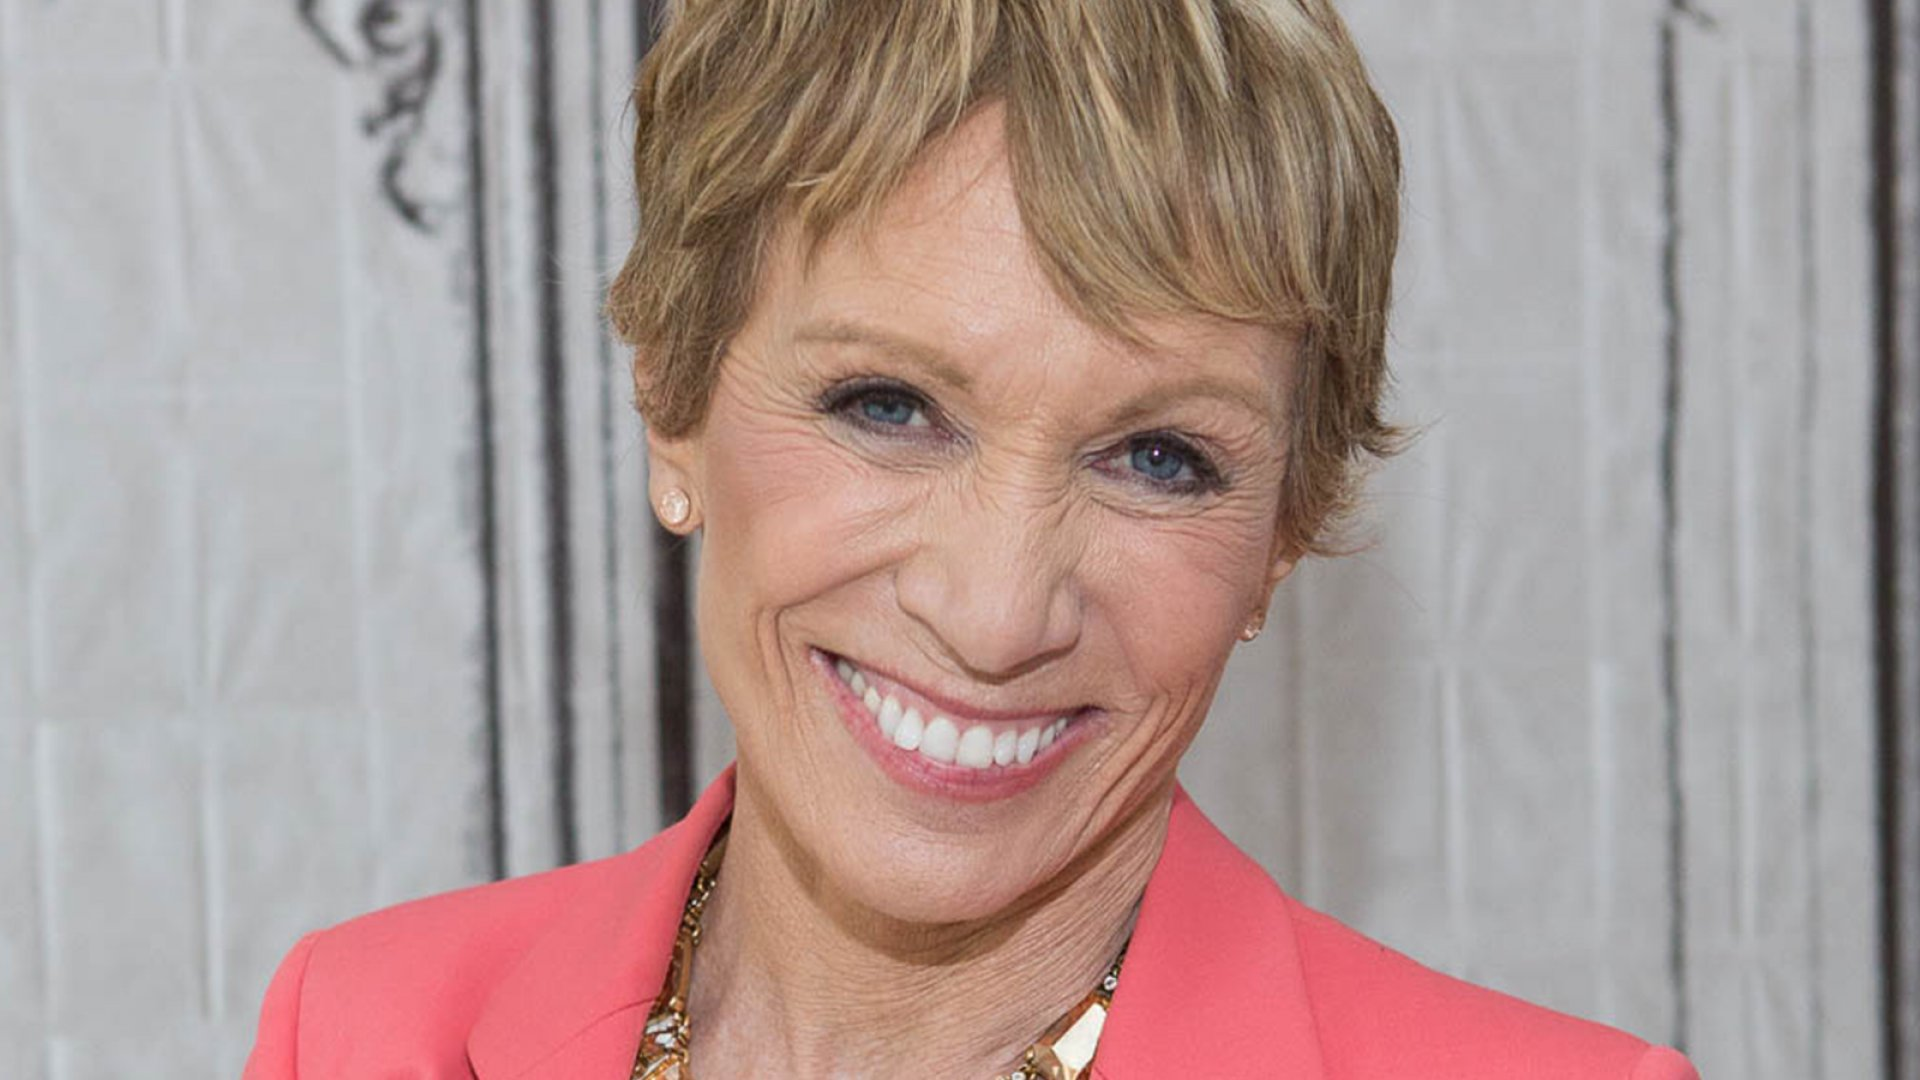 Barbara Corcoran Swears by 1 Interview Question to Weed Out Complainers